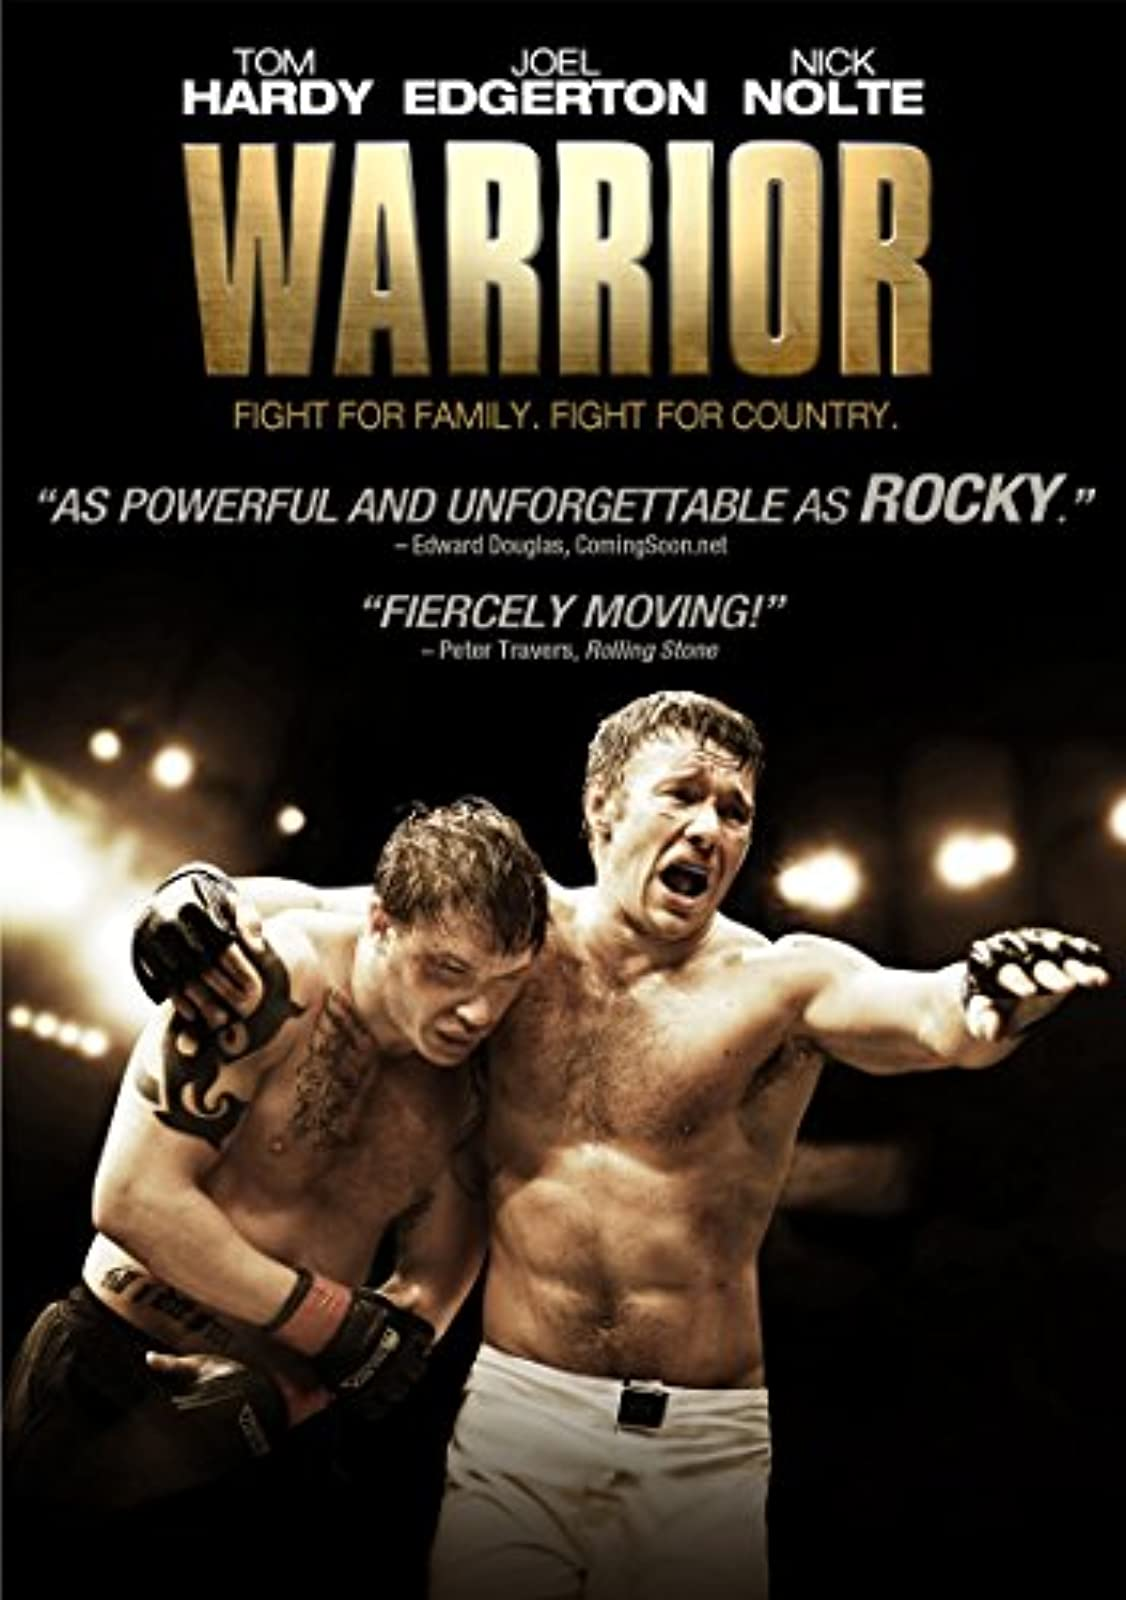 Warrior On DVD With Tom Hardy